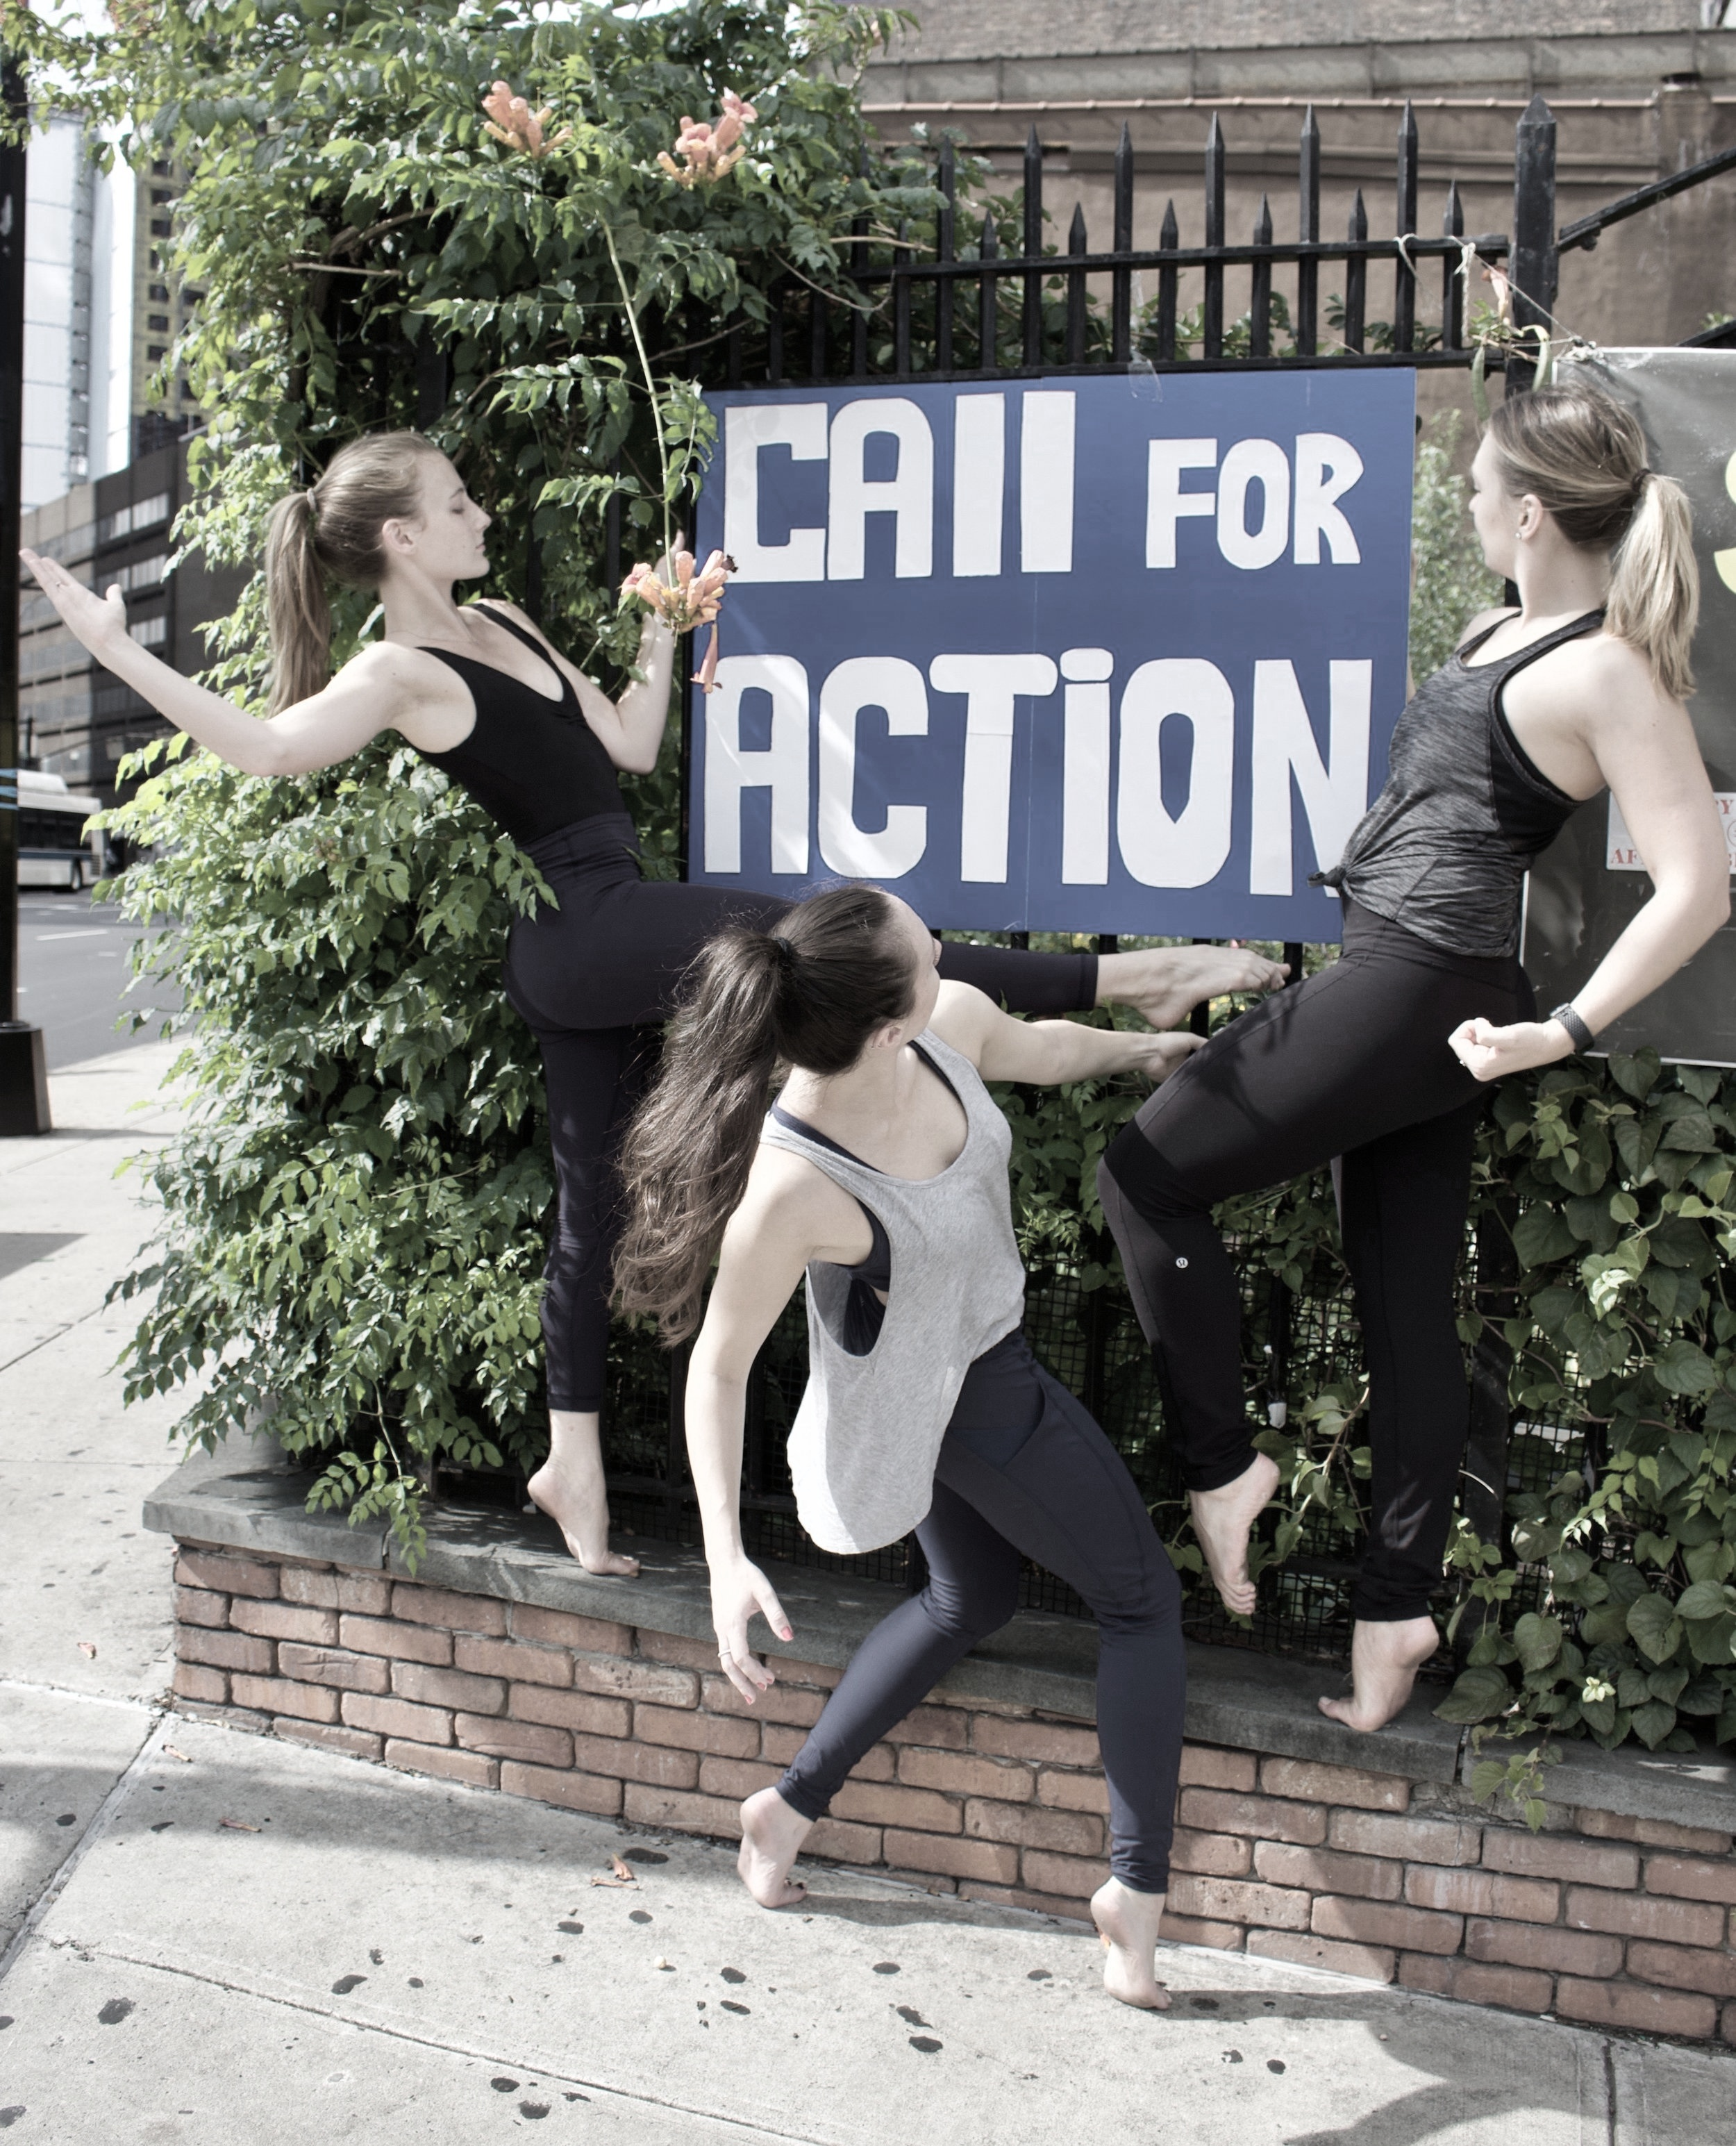 HELP US GET TO GEORGIA! - Harper Continuum Dance Theatre is extremely excited to come to Georgia, but we need your help! We will be doing educational outreach with students in the Jones County school system in March 2020. We will be working with students in classroom settings, after school programs, and offering additional workshops free of charge.CLICK HERE FOR MORE INFORMATION ON WAYS YOU CAN HELP!